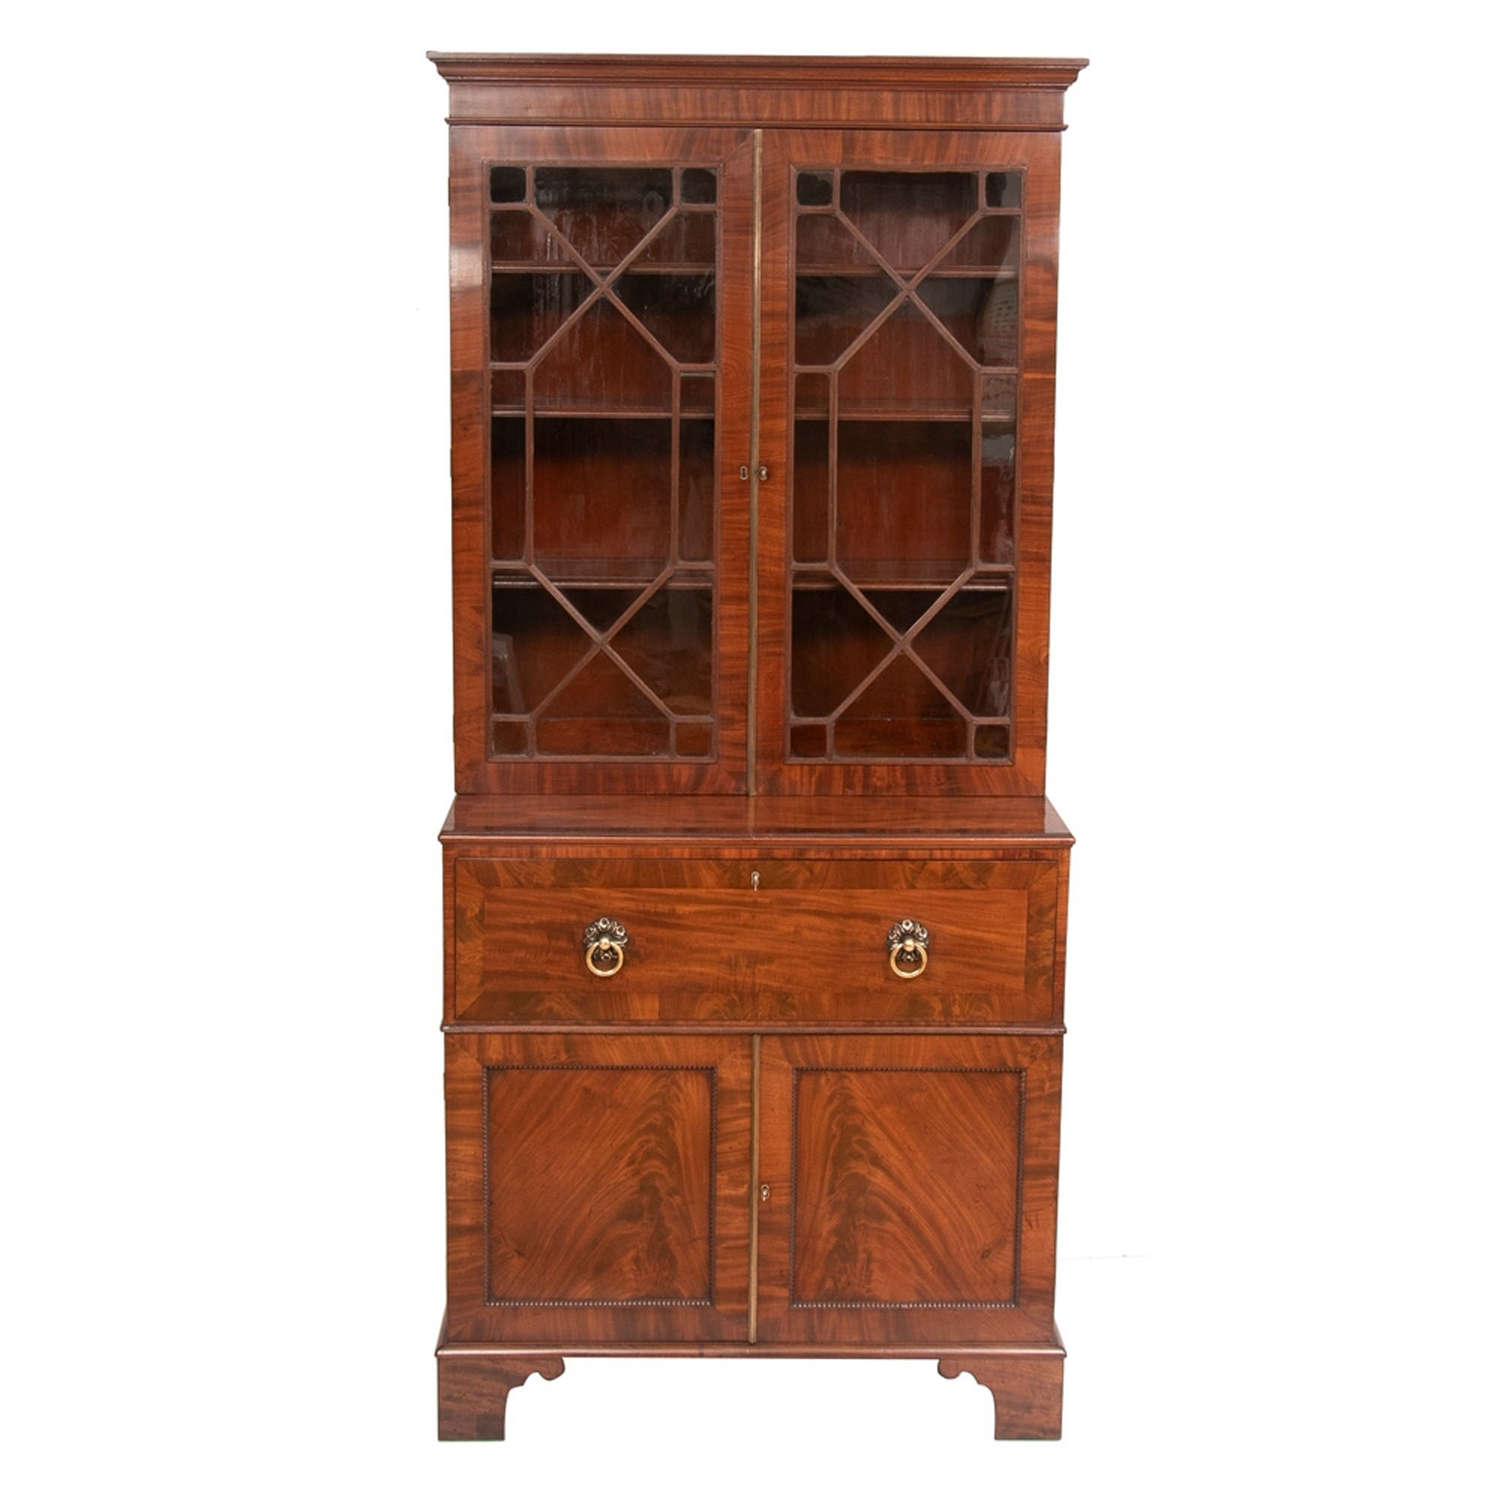 Small Early Georgian 1780-1800 Mahogany Secretaire Bureau Bookcase